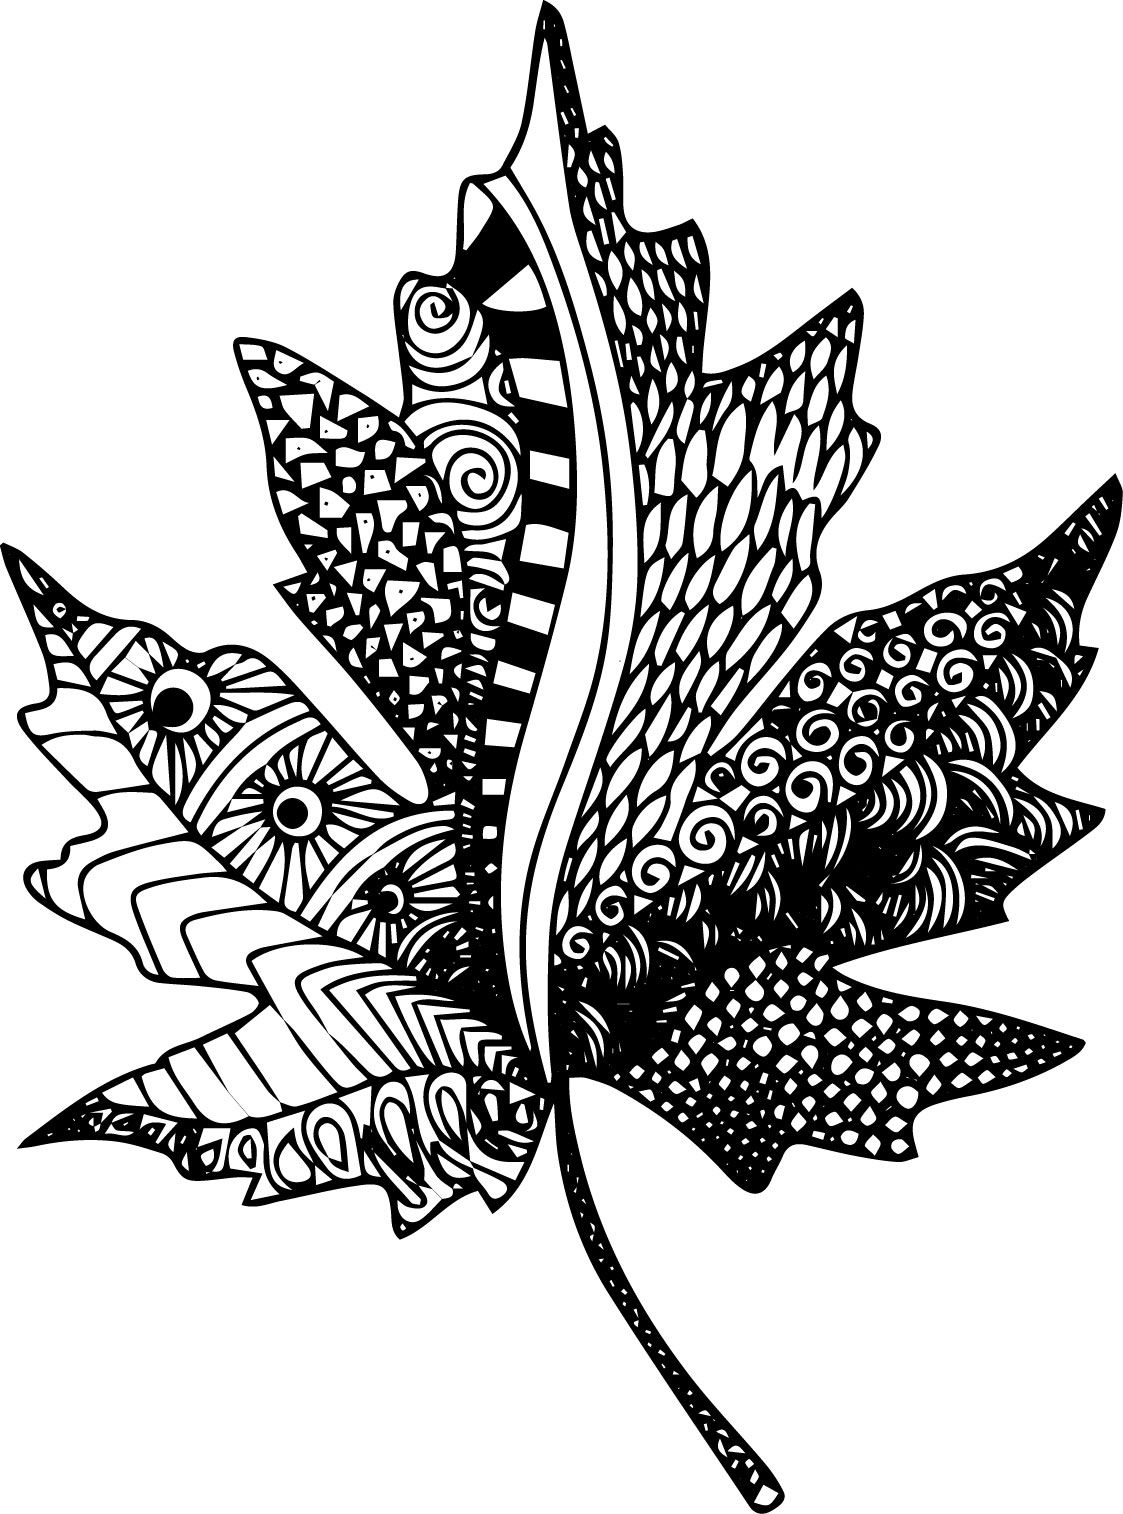 Disney zentangle coloring pages - Find This Pin And More On Mandala And Zentangle Leaf Coloring Pages